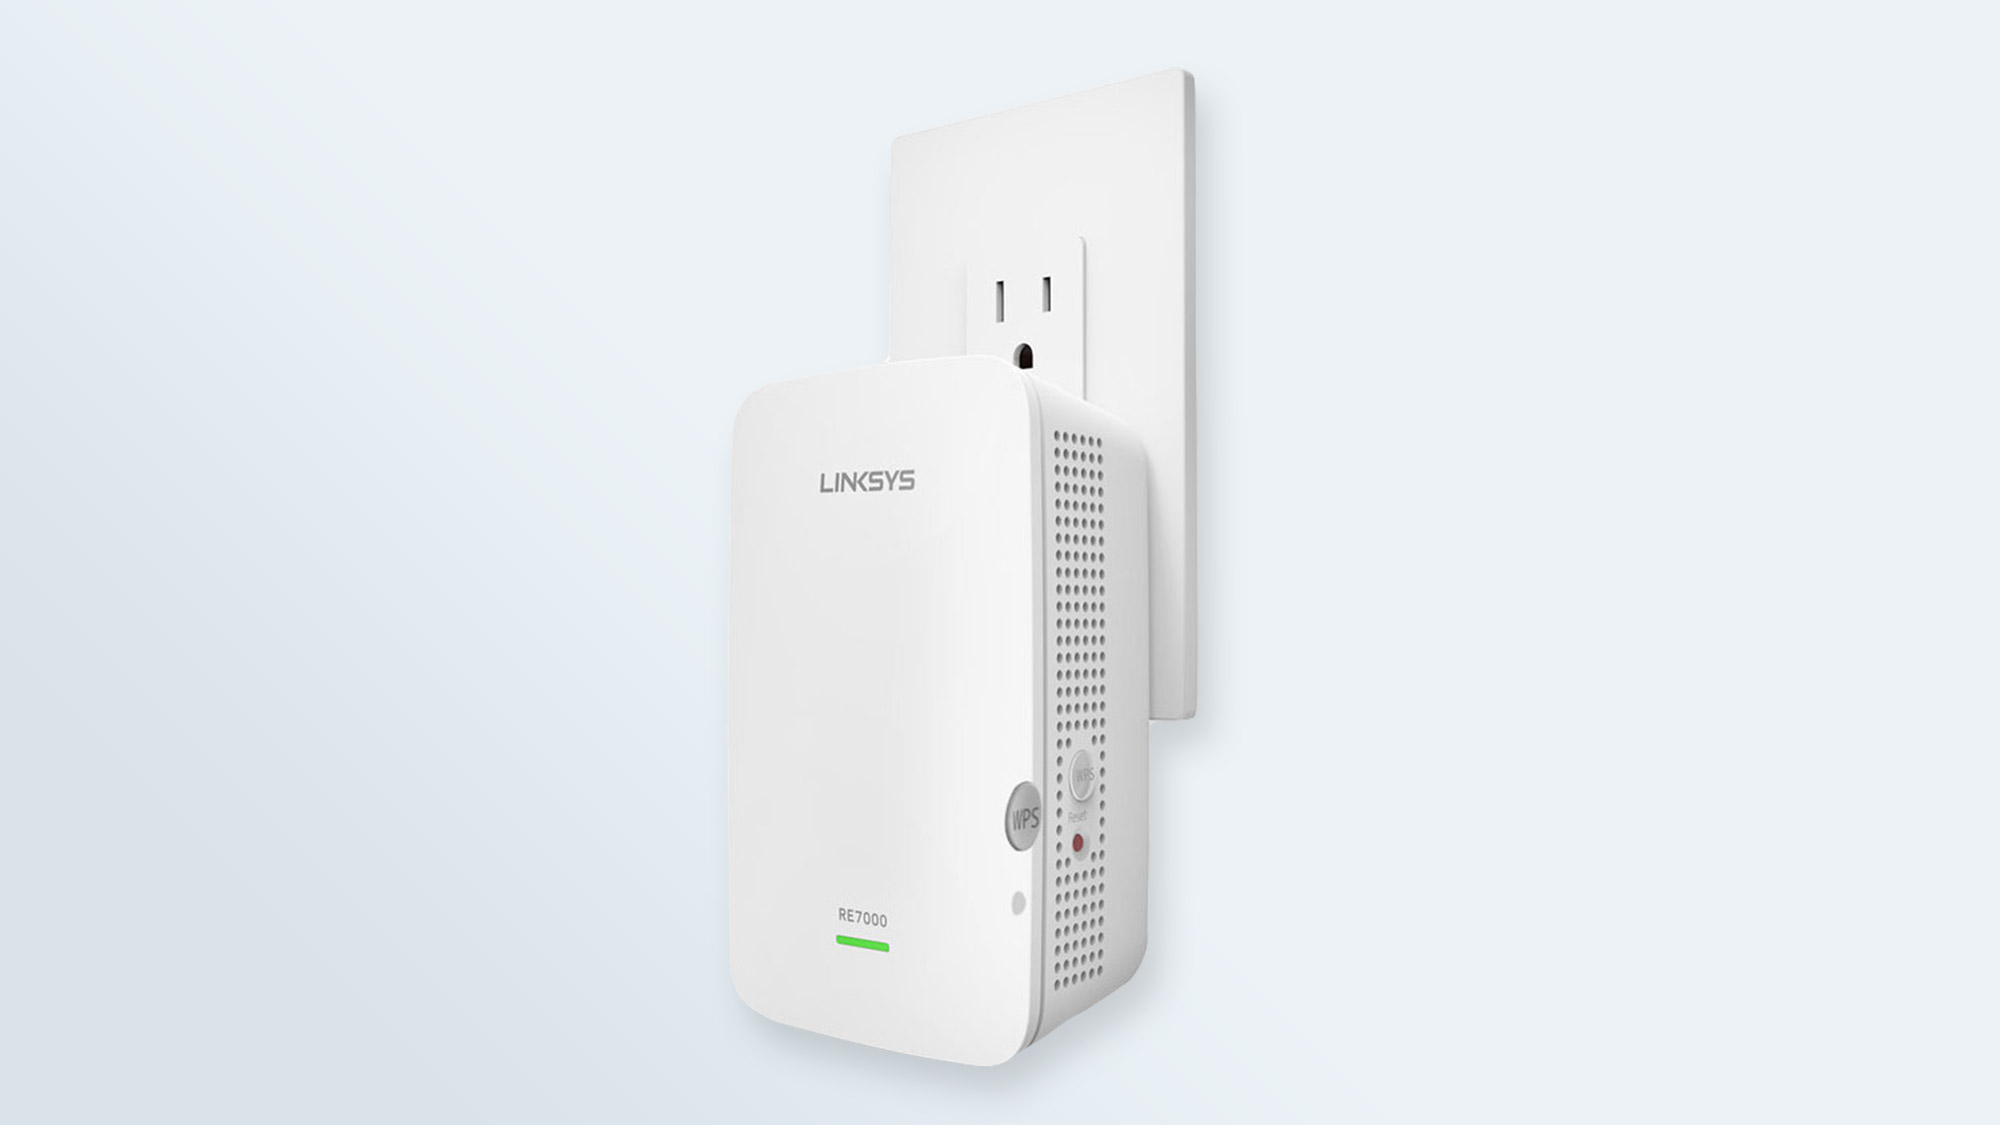 Amplificateur de portée Linksys RE7000 Max-Stream AC1900 + Wi-Fi